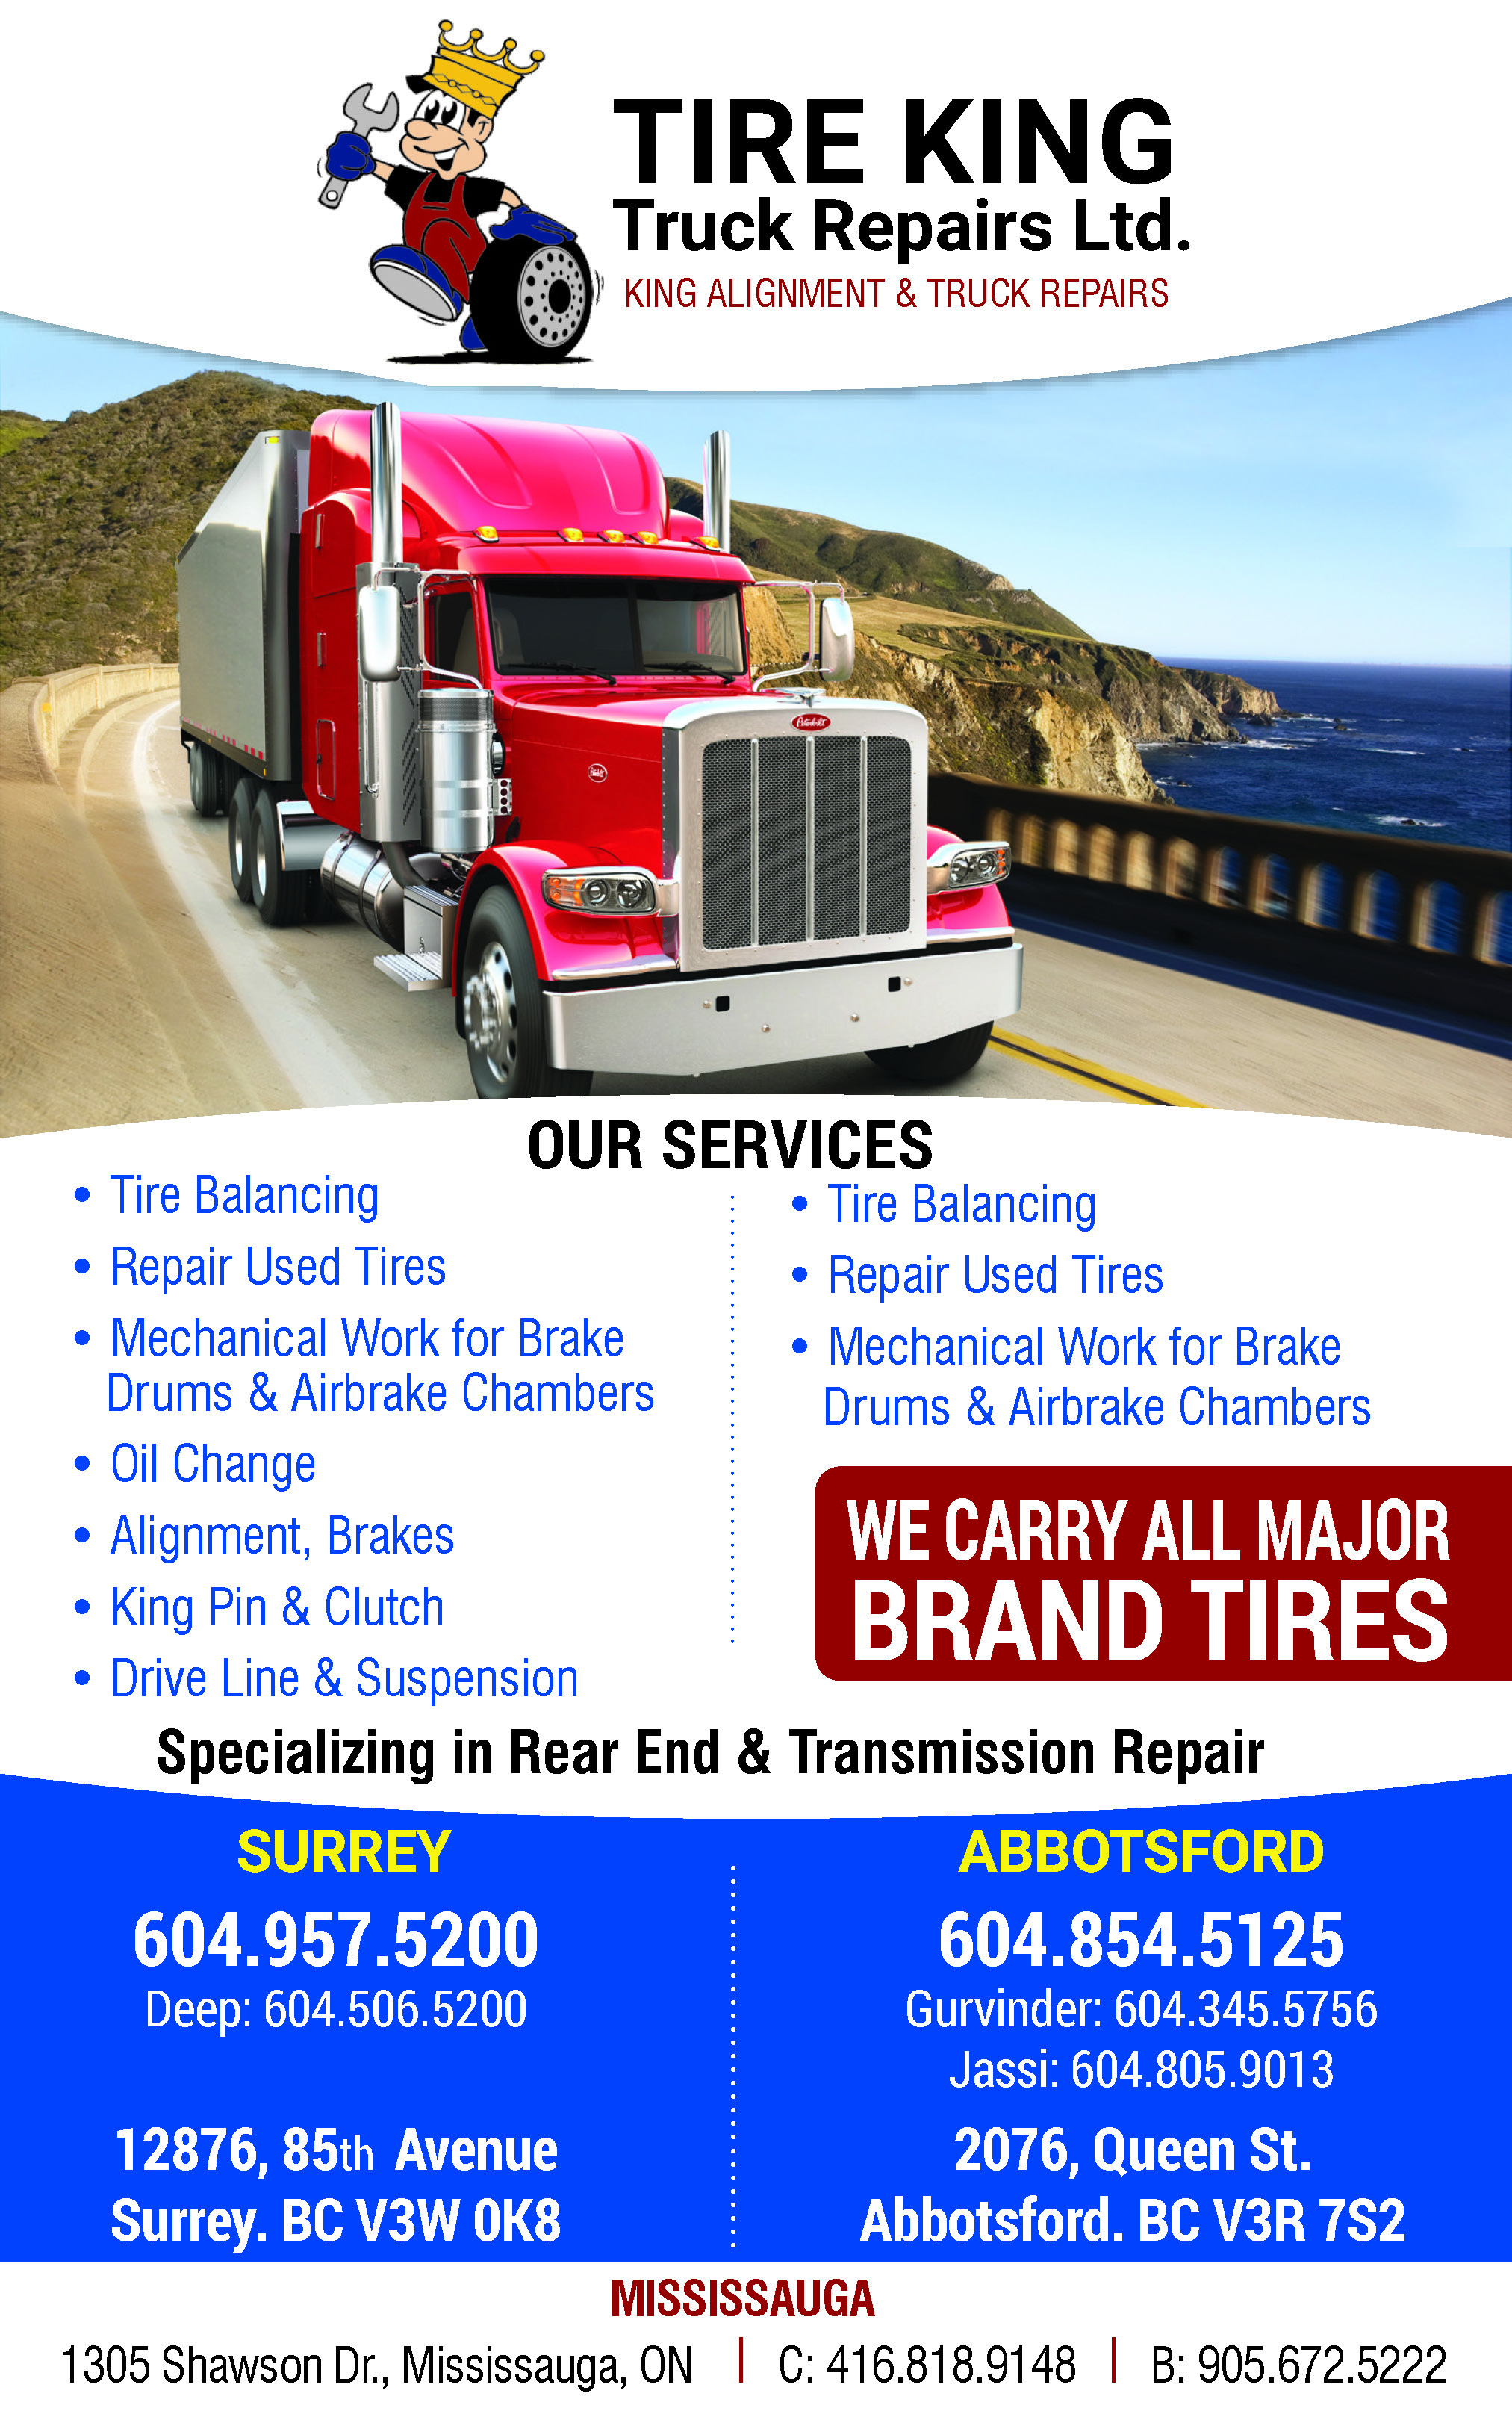 tire-king-truck-repairs-ltd-TCY7v3G.jpeg